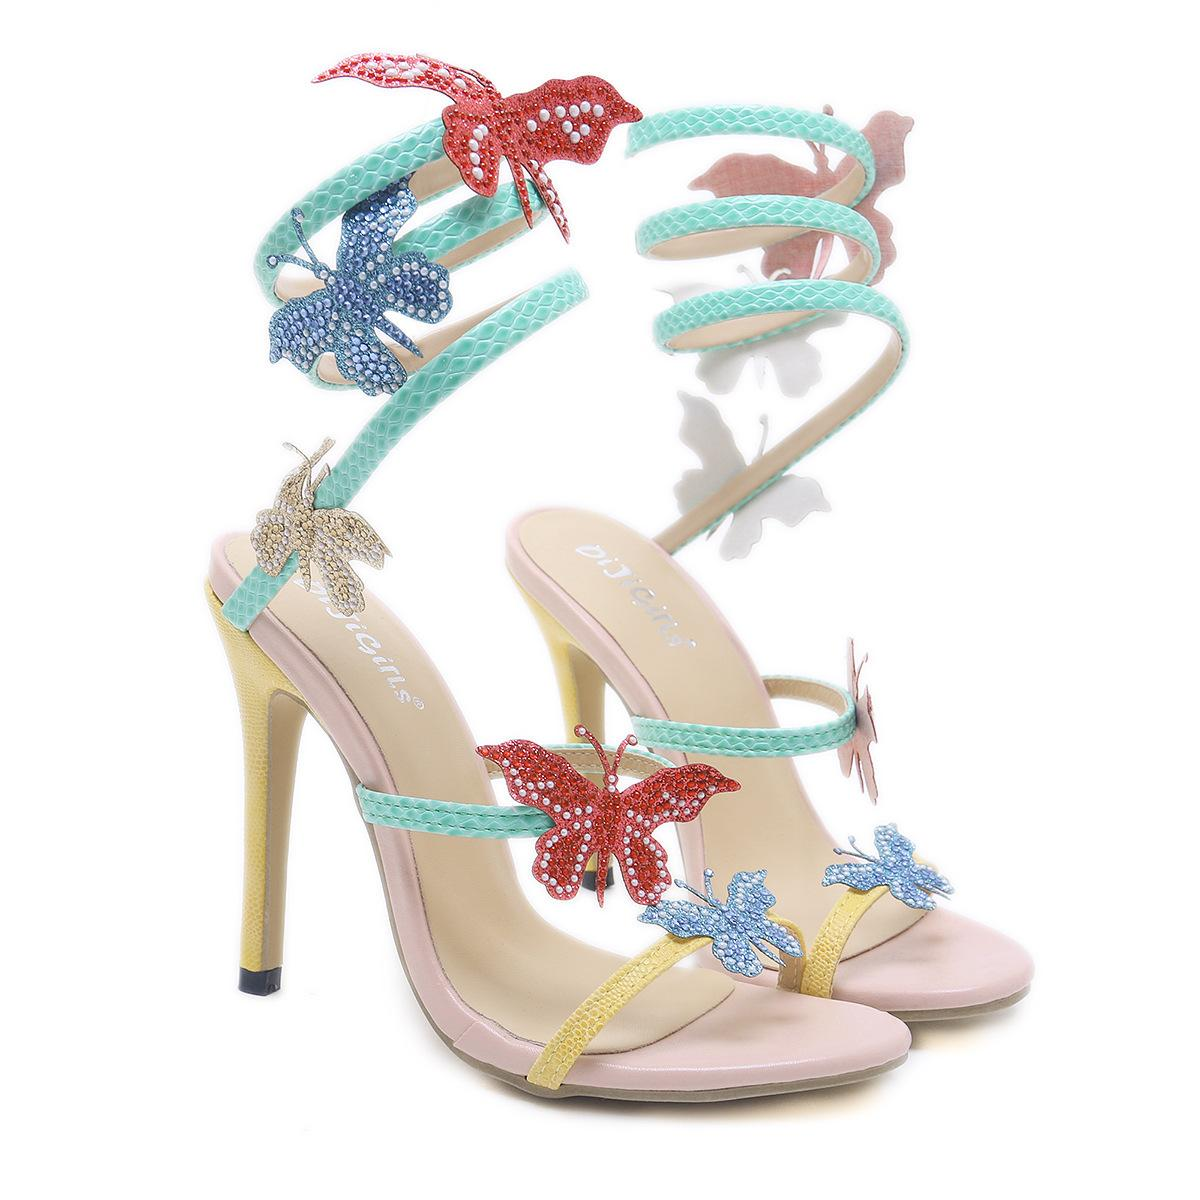 f98917c2d Special offer new high-heeled shoes stiletto women s sandals snake-shaped  winding butterfly high